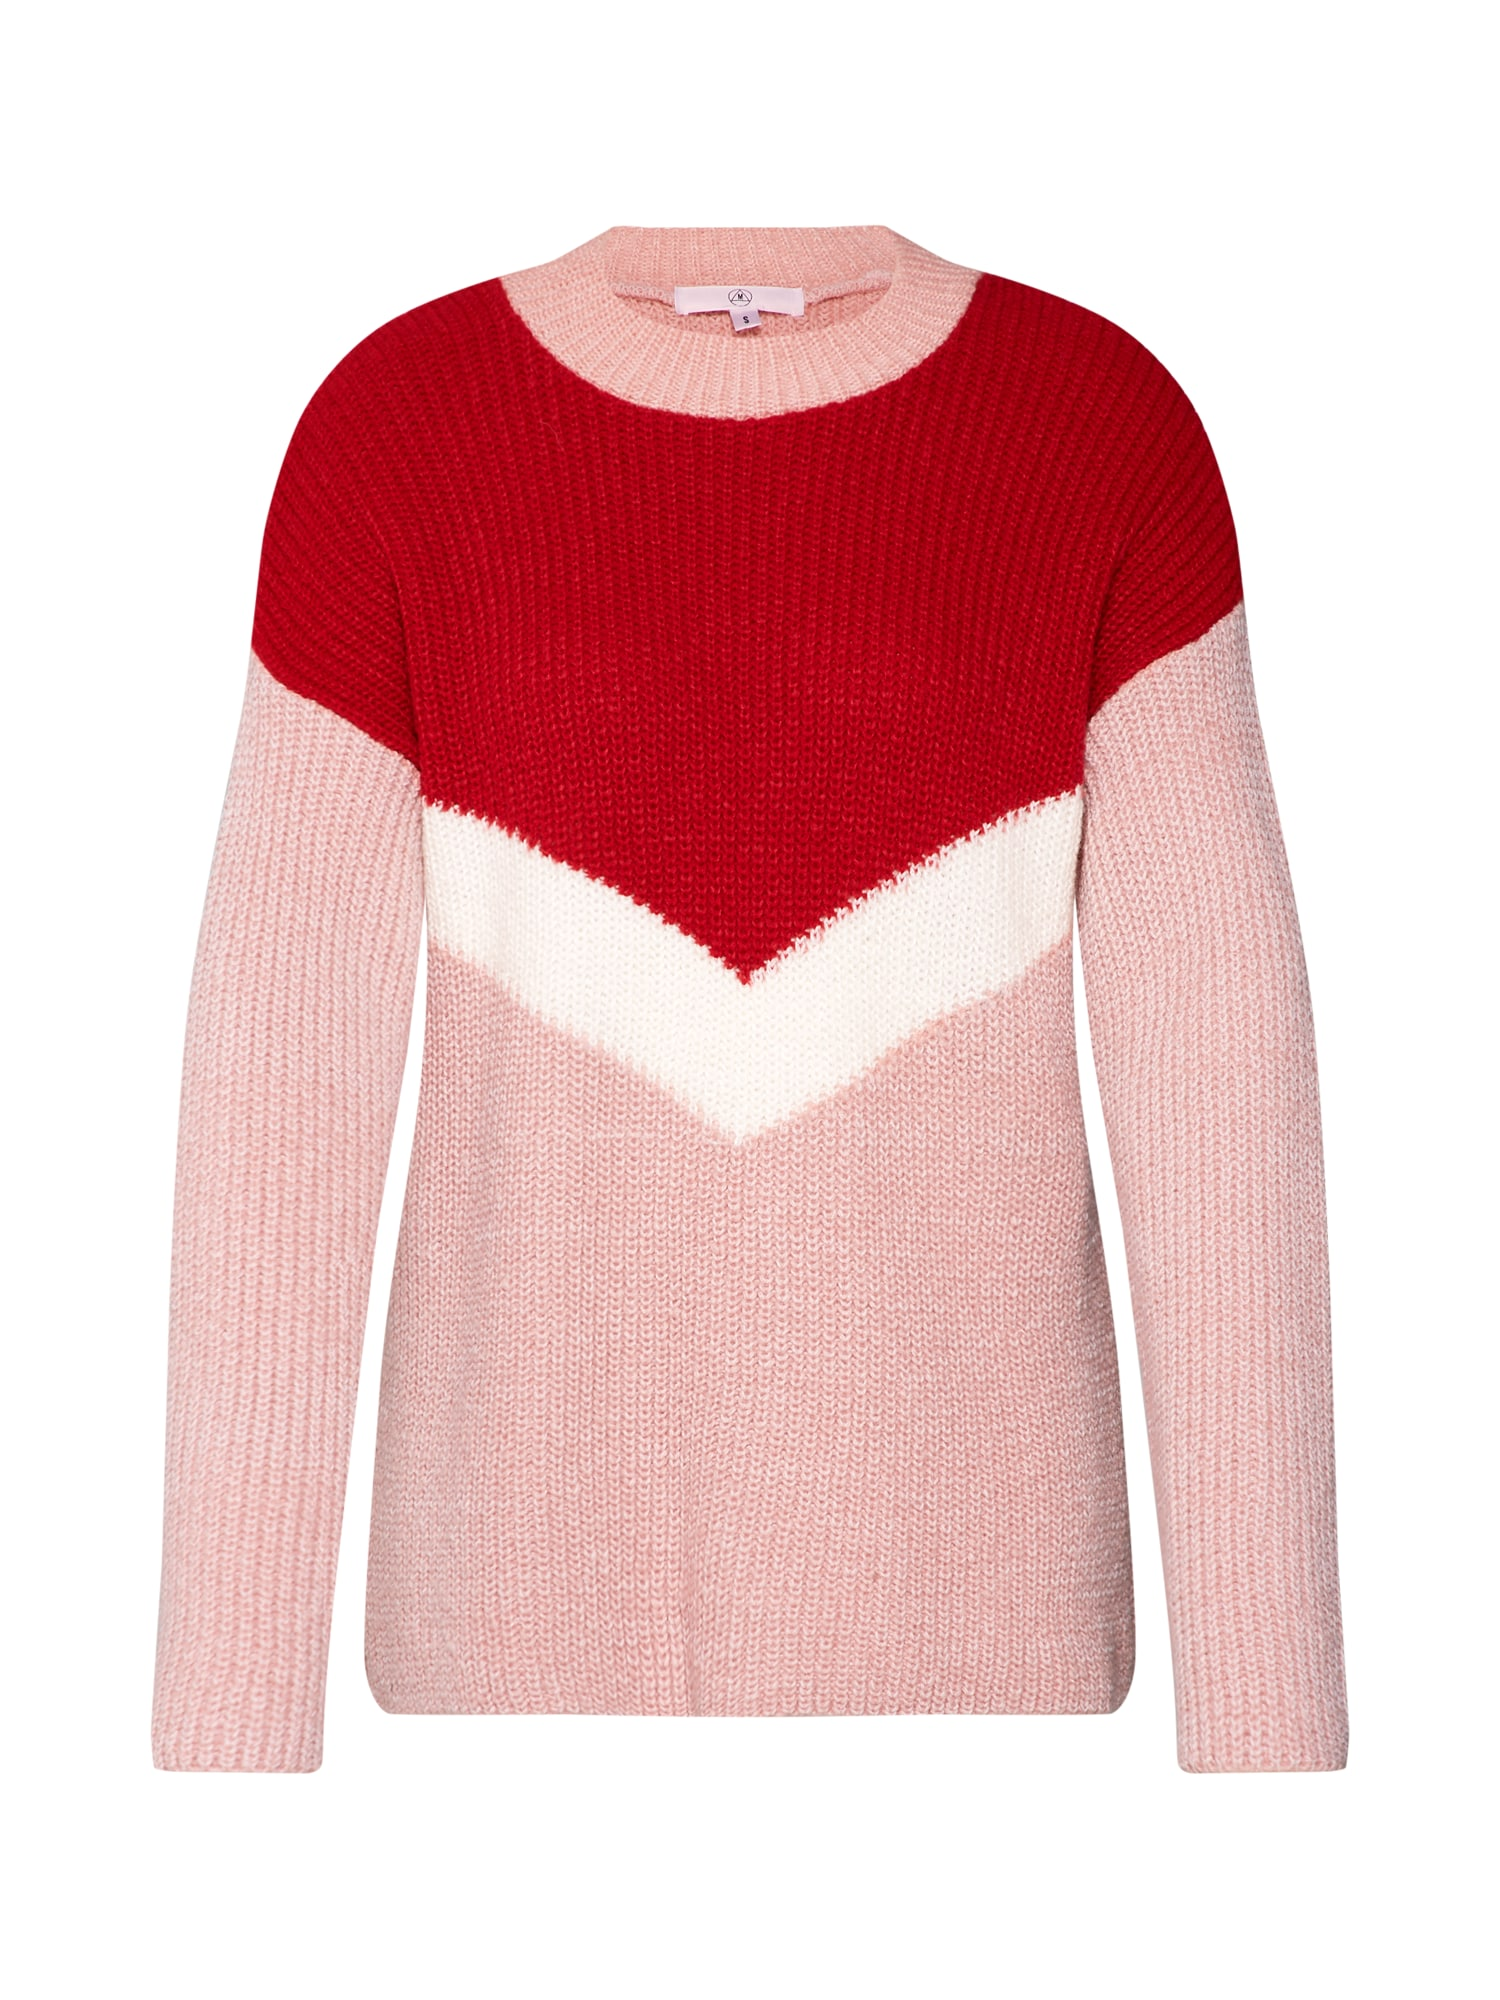 Pullover 'CHEVRON' | Bekleidung > Pullover | Rosa - Rot - Weiß | Missguided